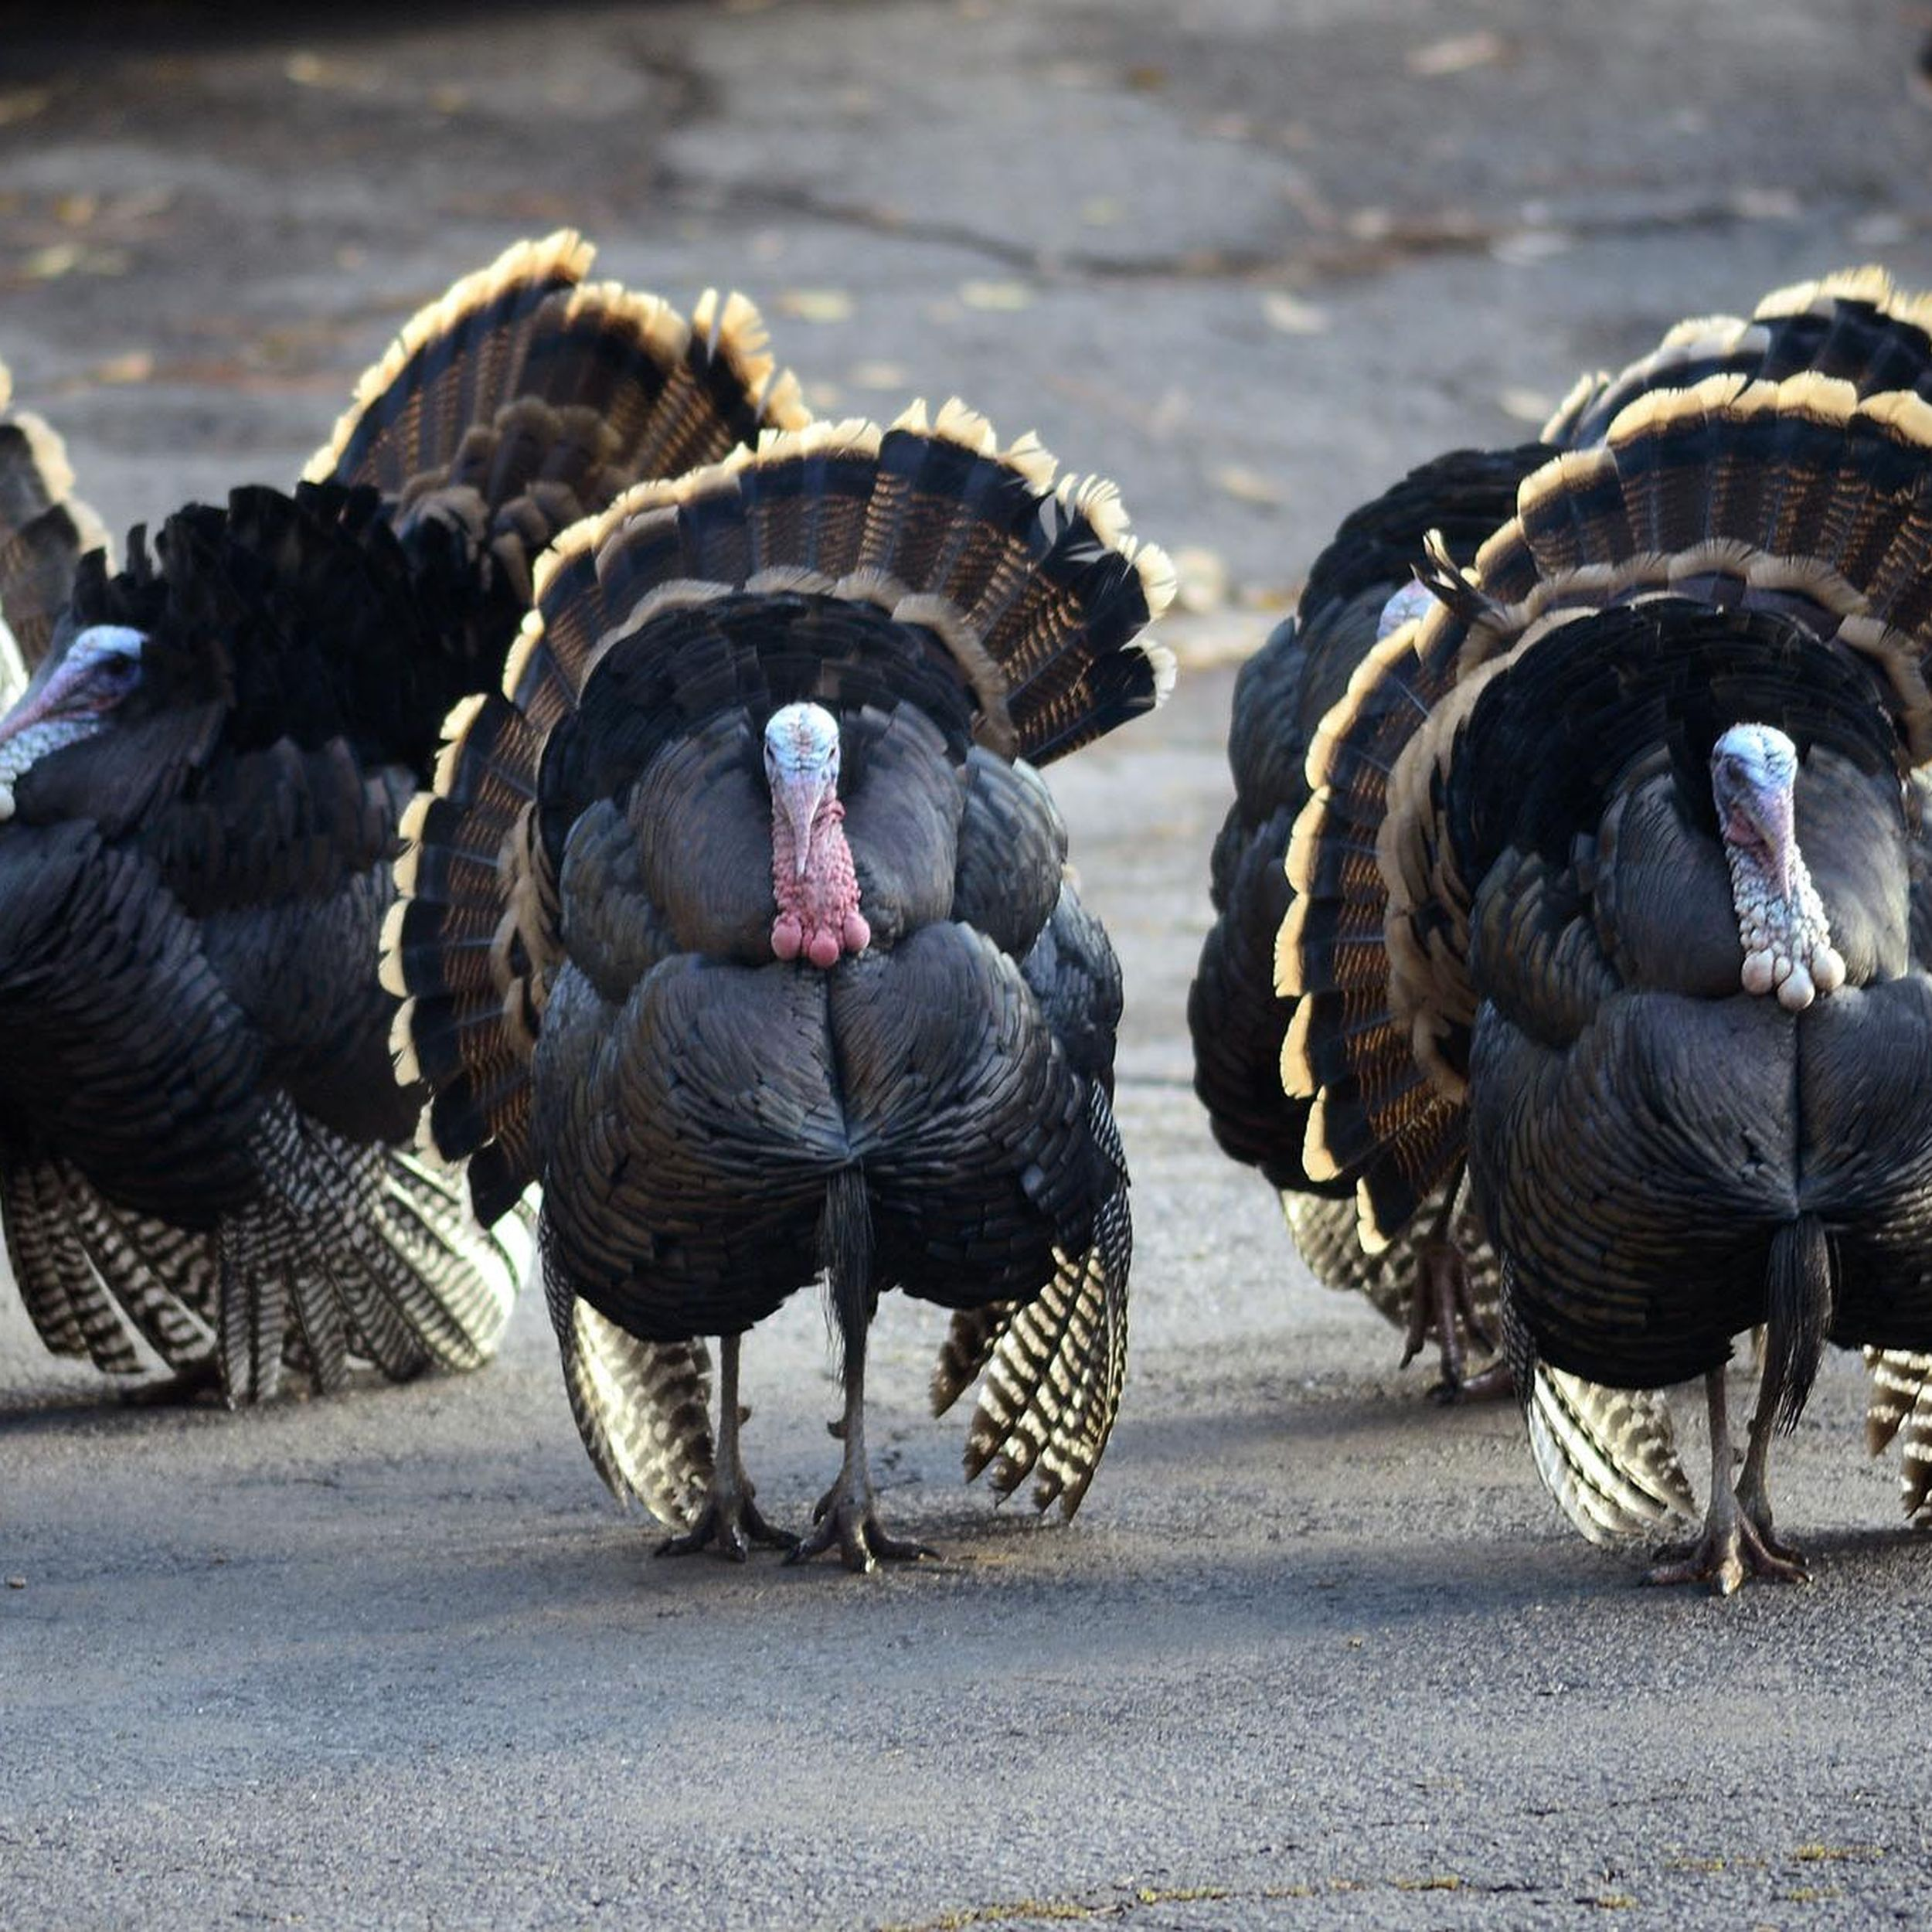 Inland Northwest S Thriving Turkey Population Is An Invasive Nuisance Or A Conservation Success Or Both The Spokesman Review